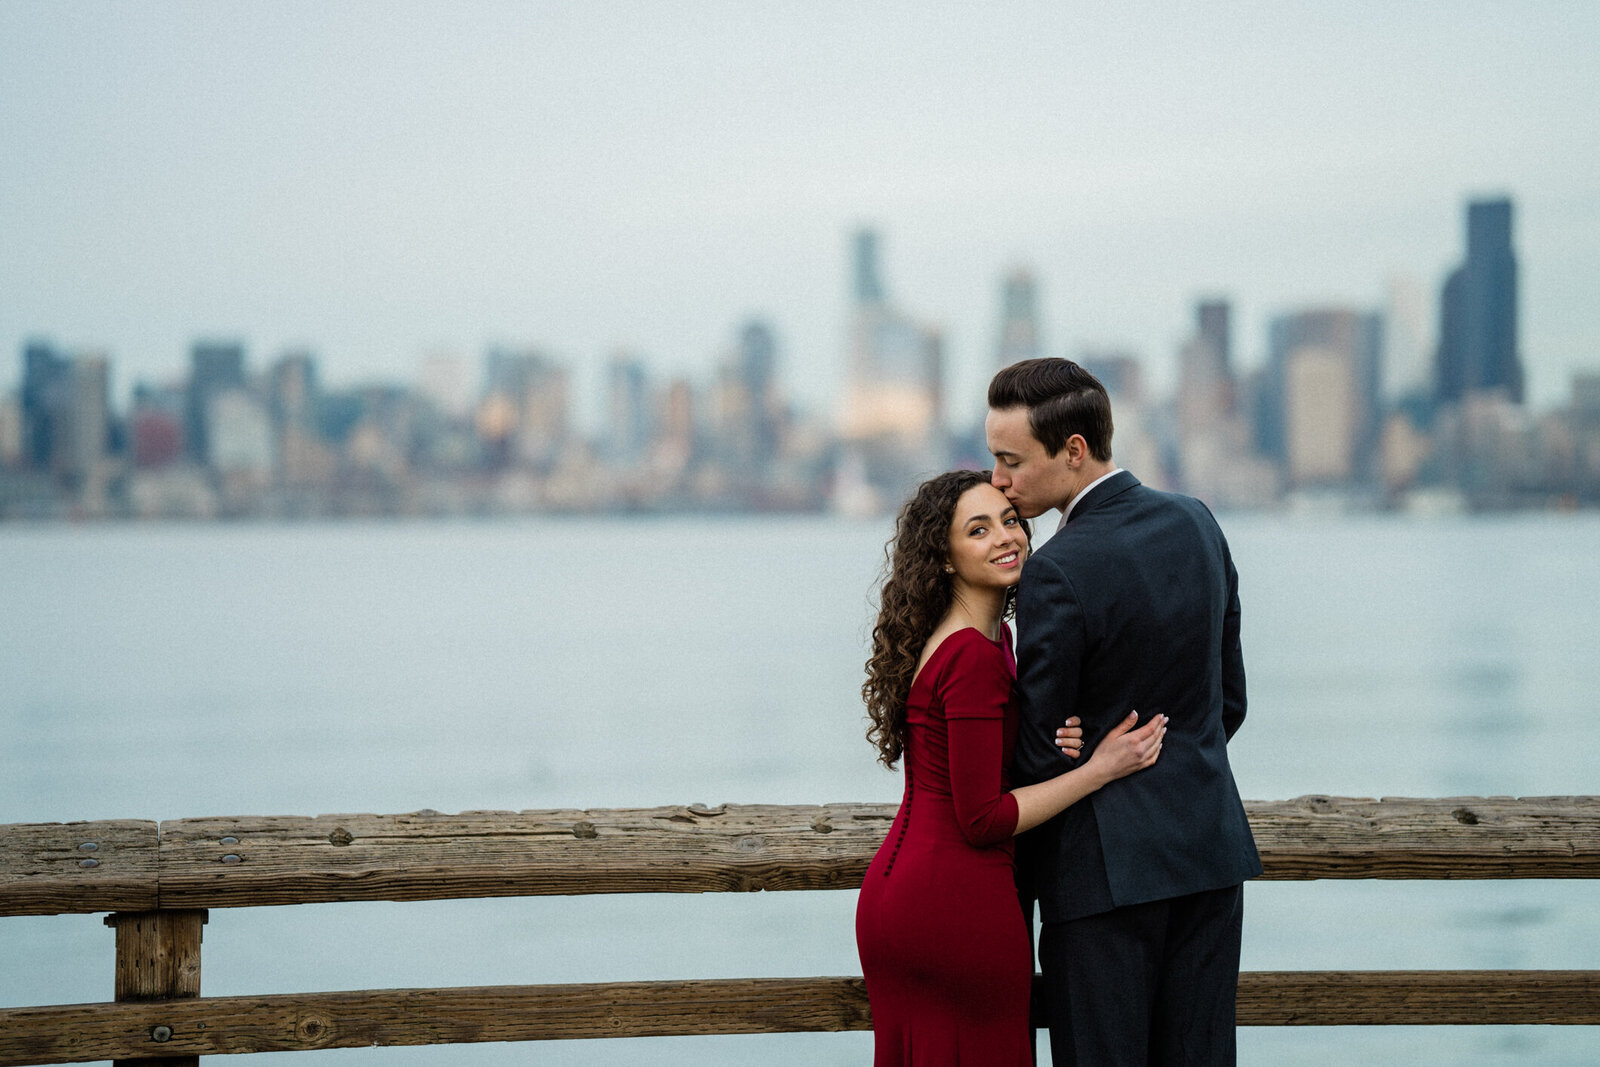 Puget Sound in the distance of the engagement pictures near Alki Beach, best places for engagement photos in Seattle